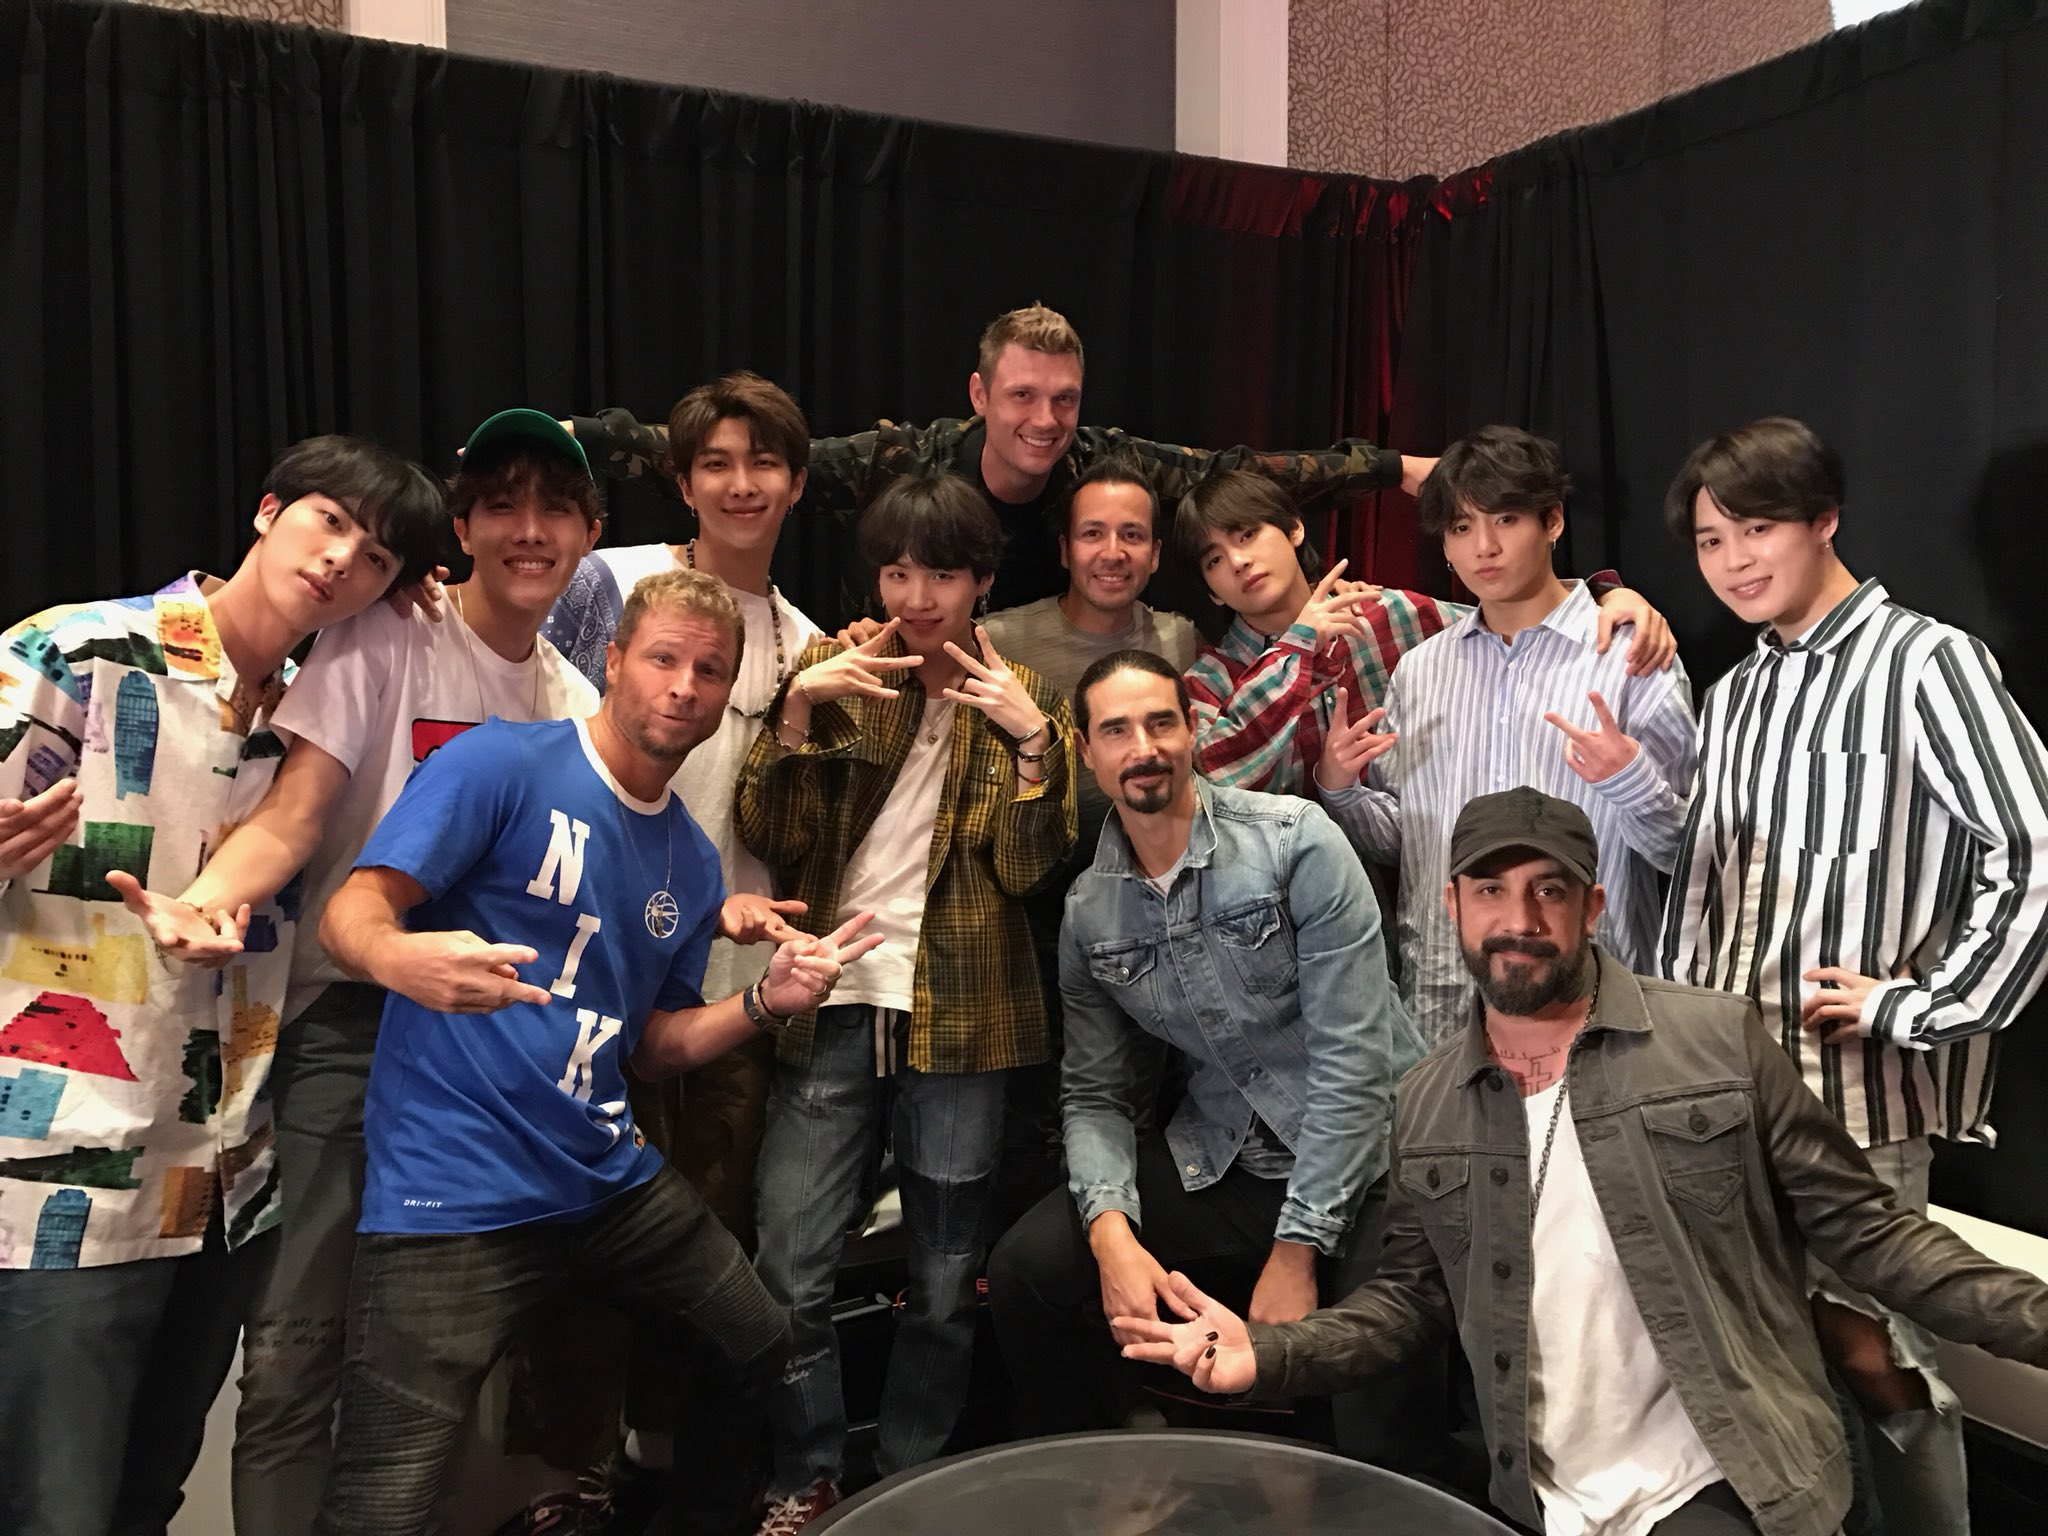 kzi ddl9fxuuqaaj4lp - [Picture/Media] BTS at 2018 BBMAs (Westwoodone Backstage) [180520]